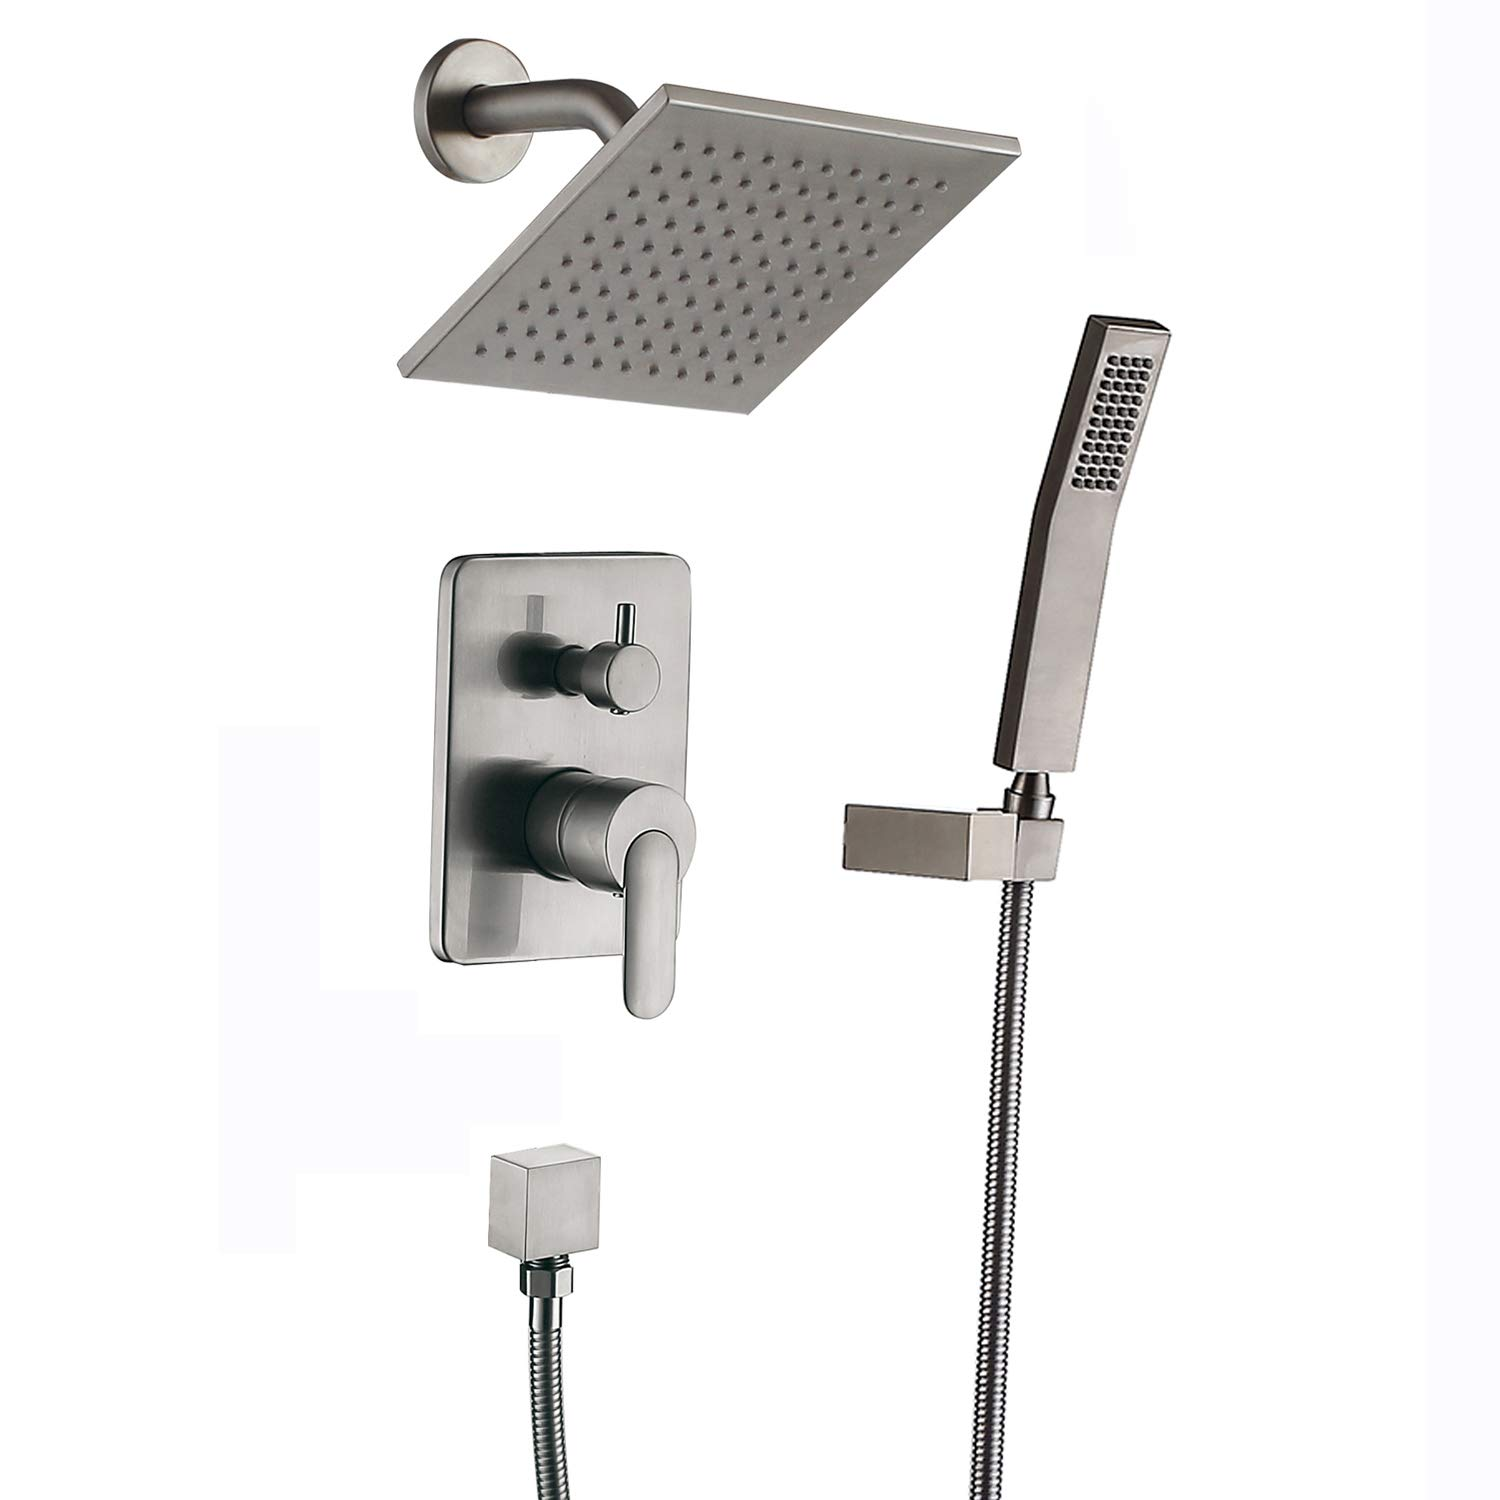 Shower Faucet.Shower Faucet Brushed Nickel All Metal Shower Systems Big Flow Rain Shower Heads With Handheld Spray Fixtures Sets Complete